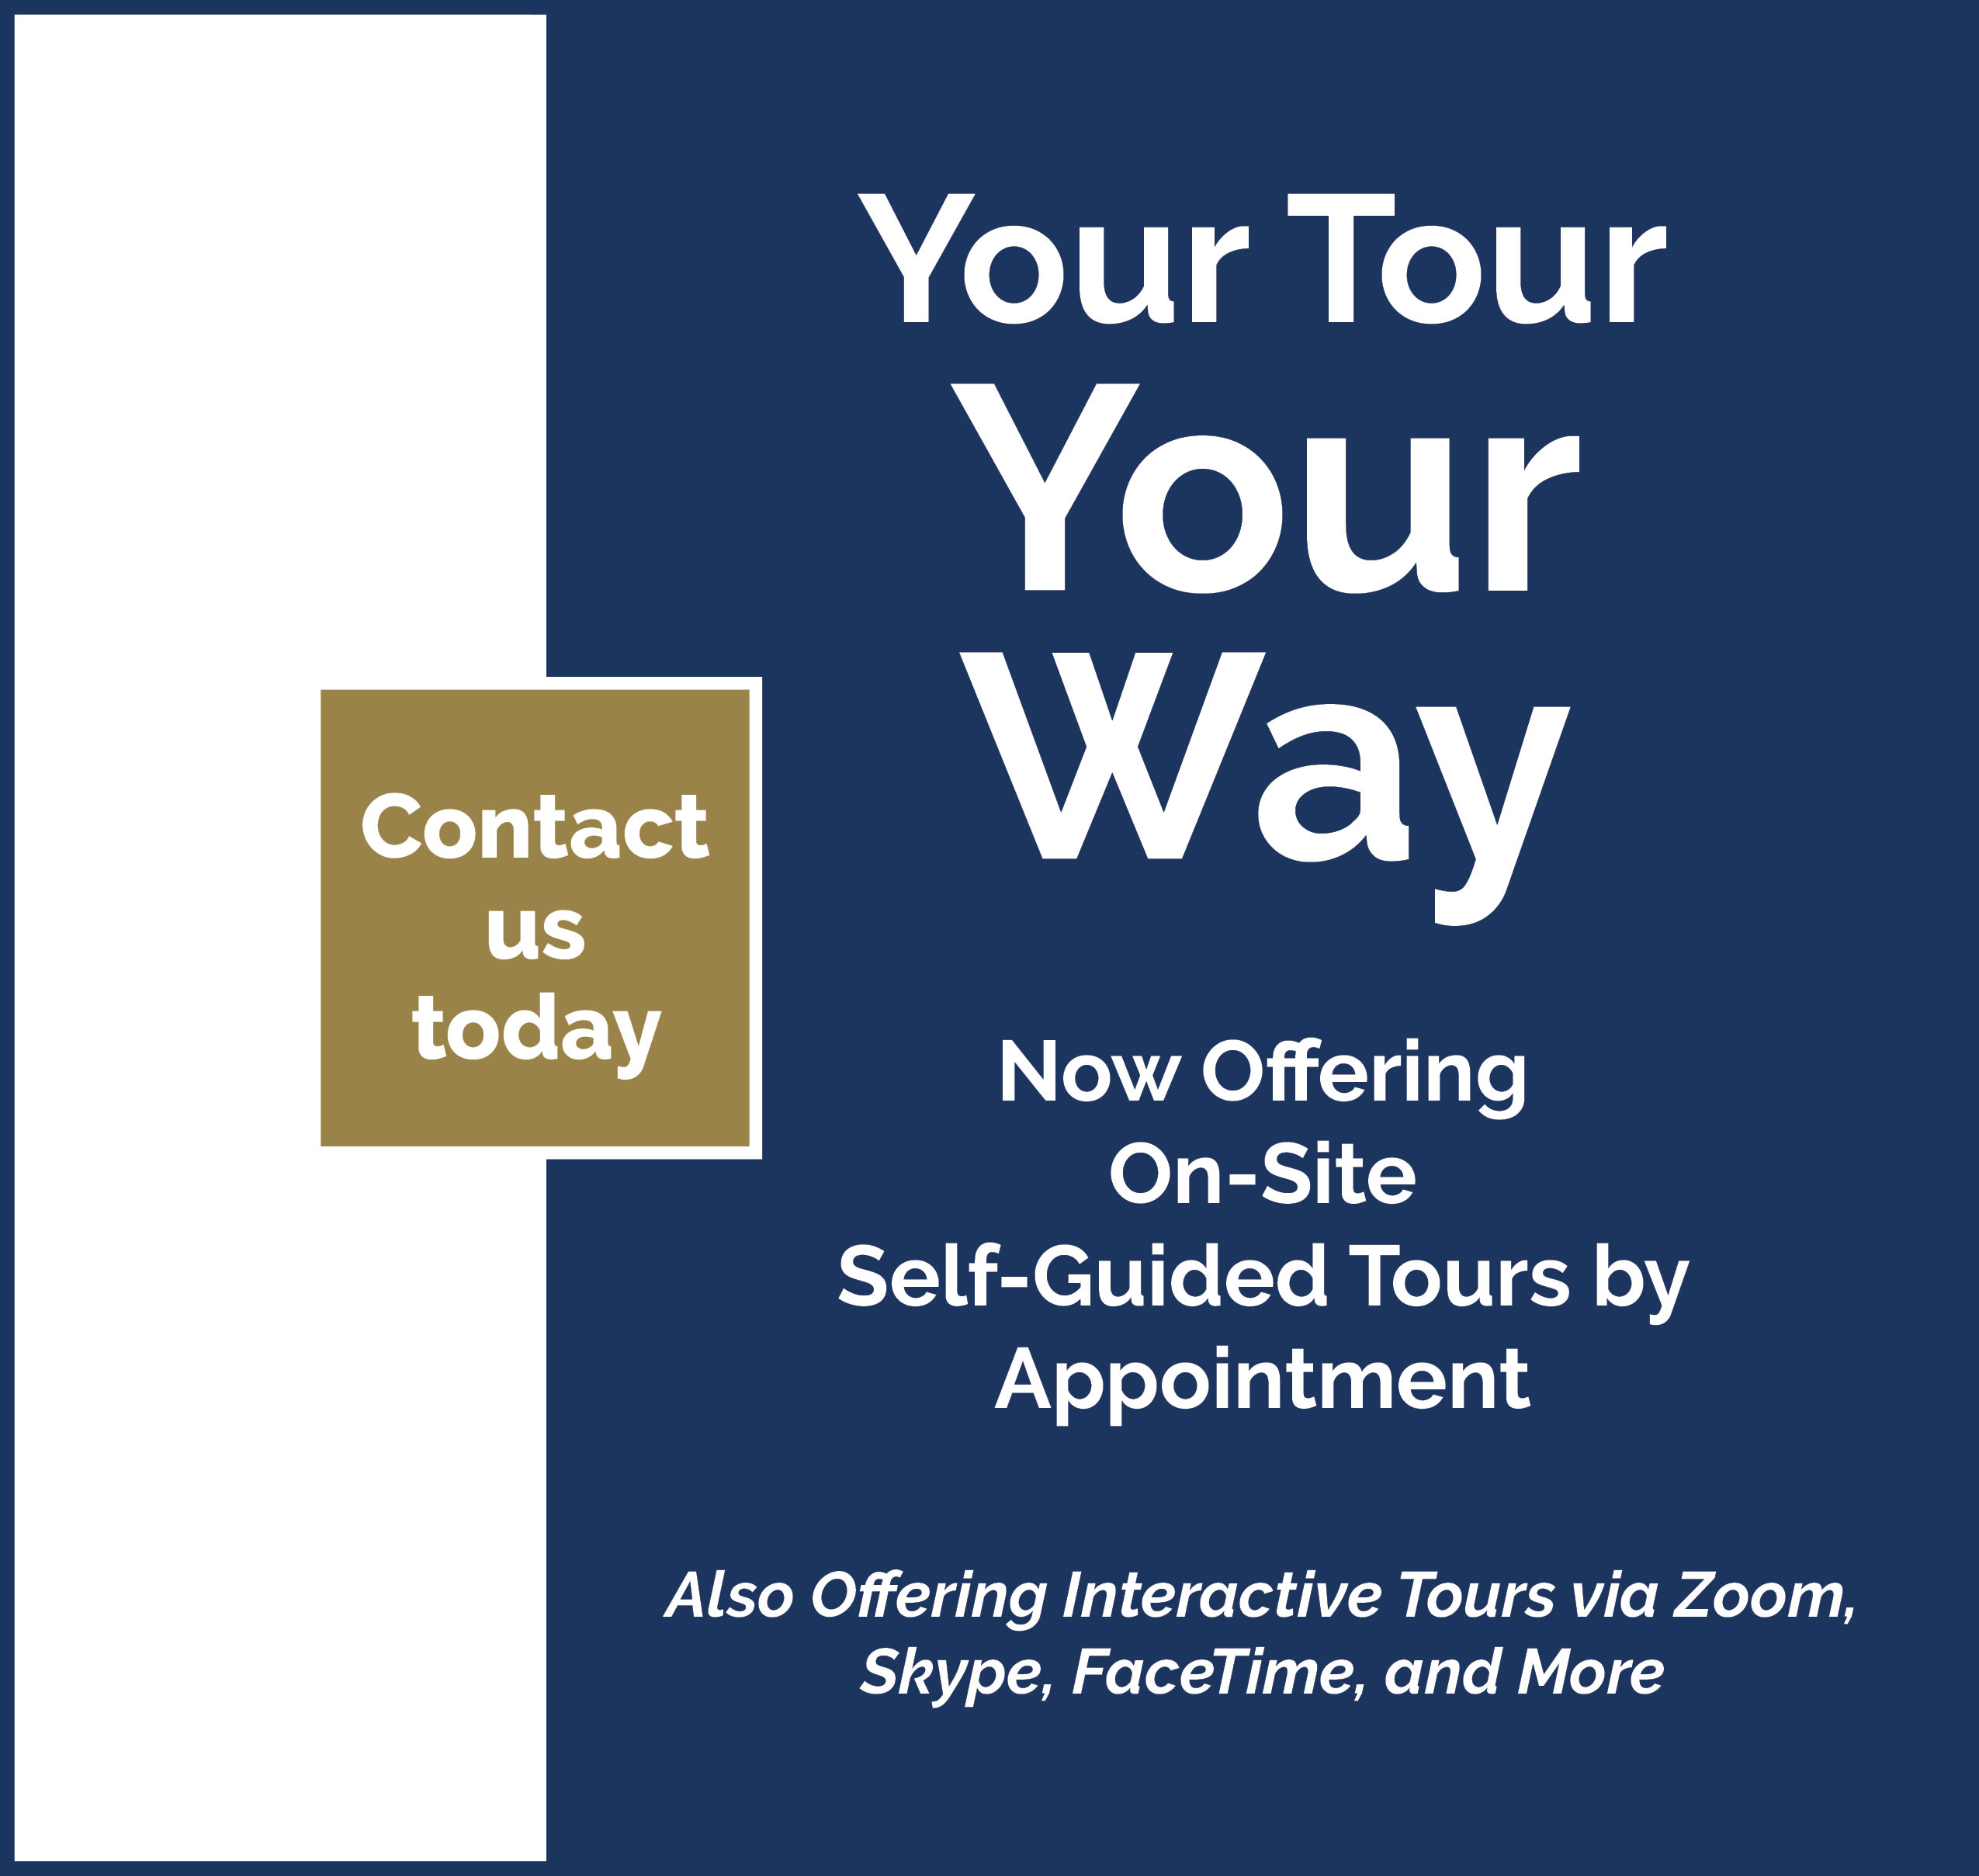 Your Tour Your Way Ad